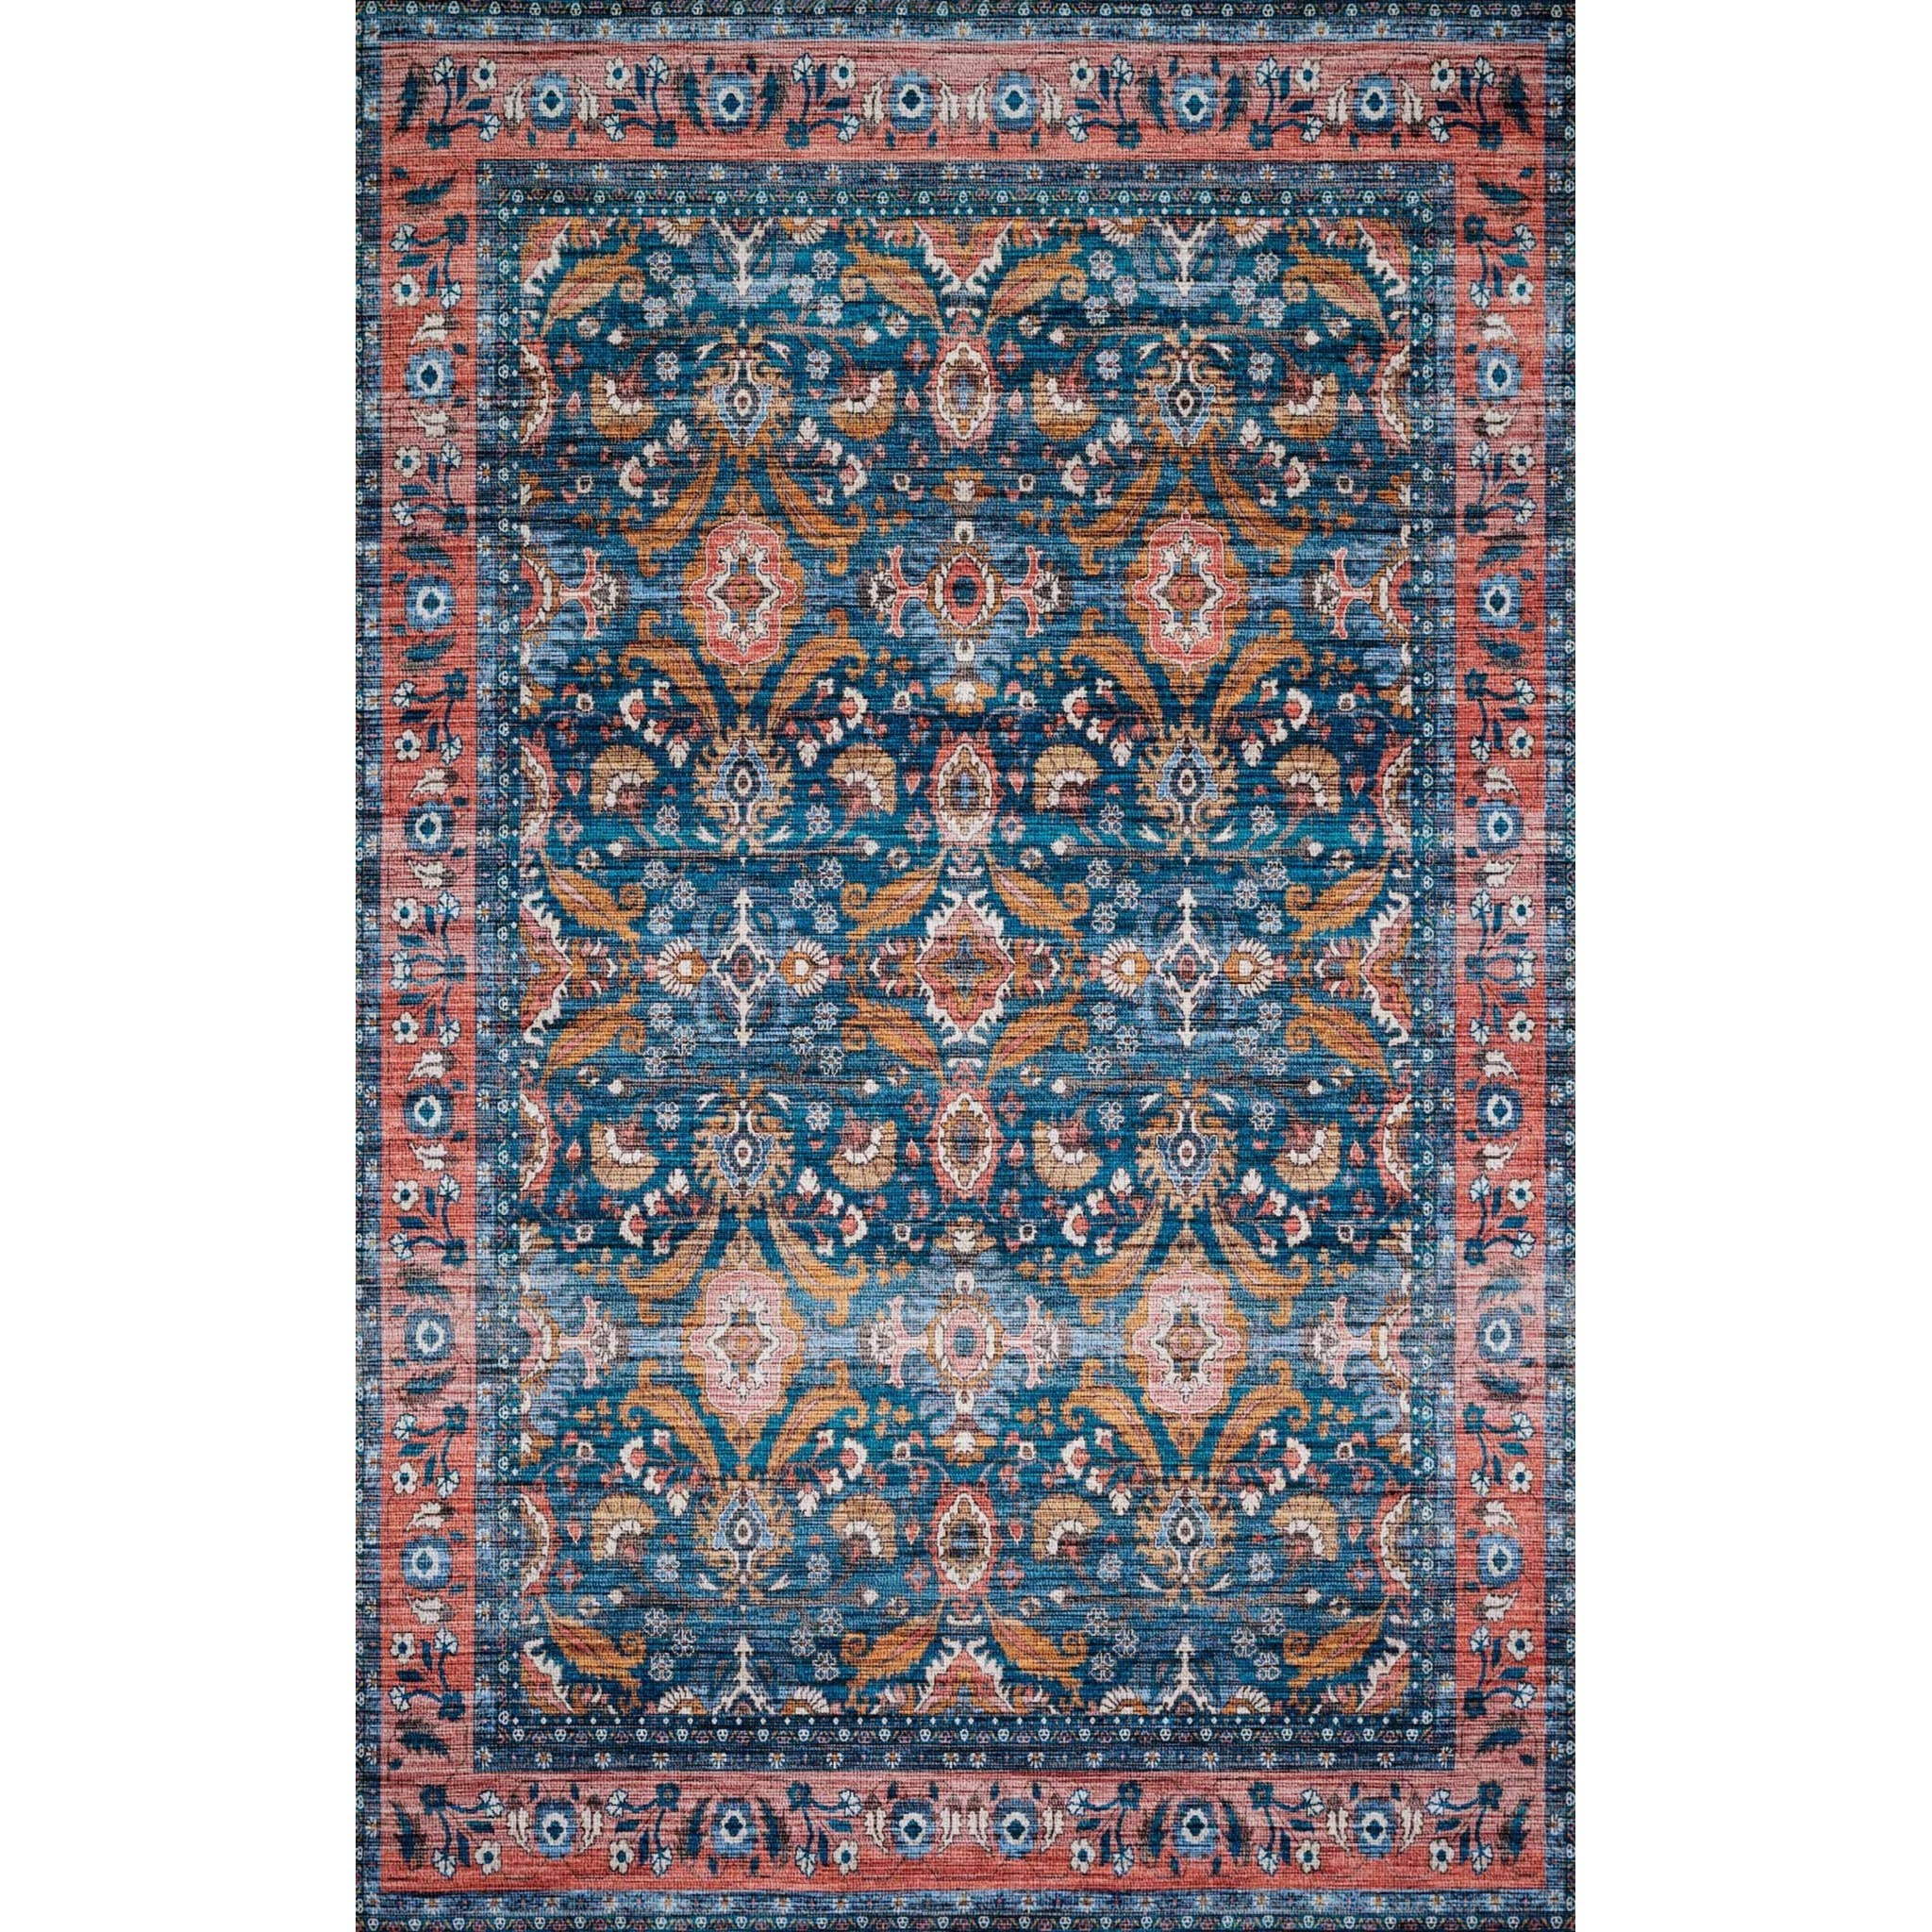 """Cielo-Loloi X Justina Blakeney Collection 3'-0"""" x 5'-0"""" Rug by Loloi Rugs at Virginia Furniture Market"""